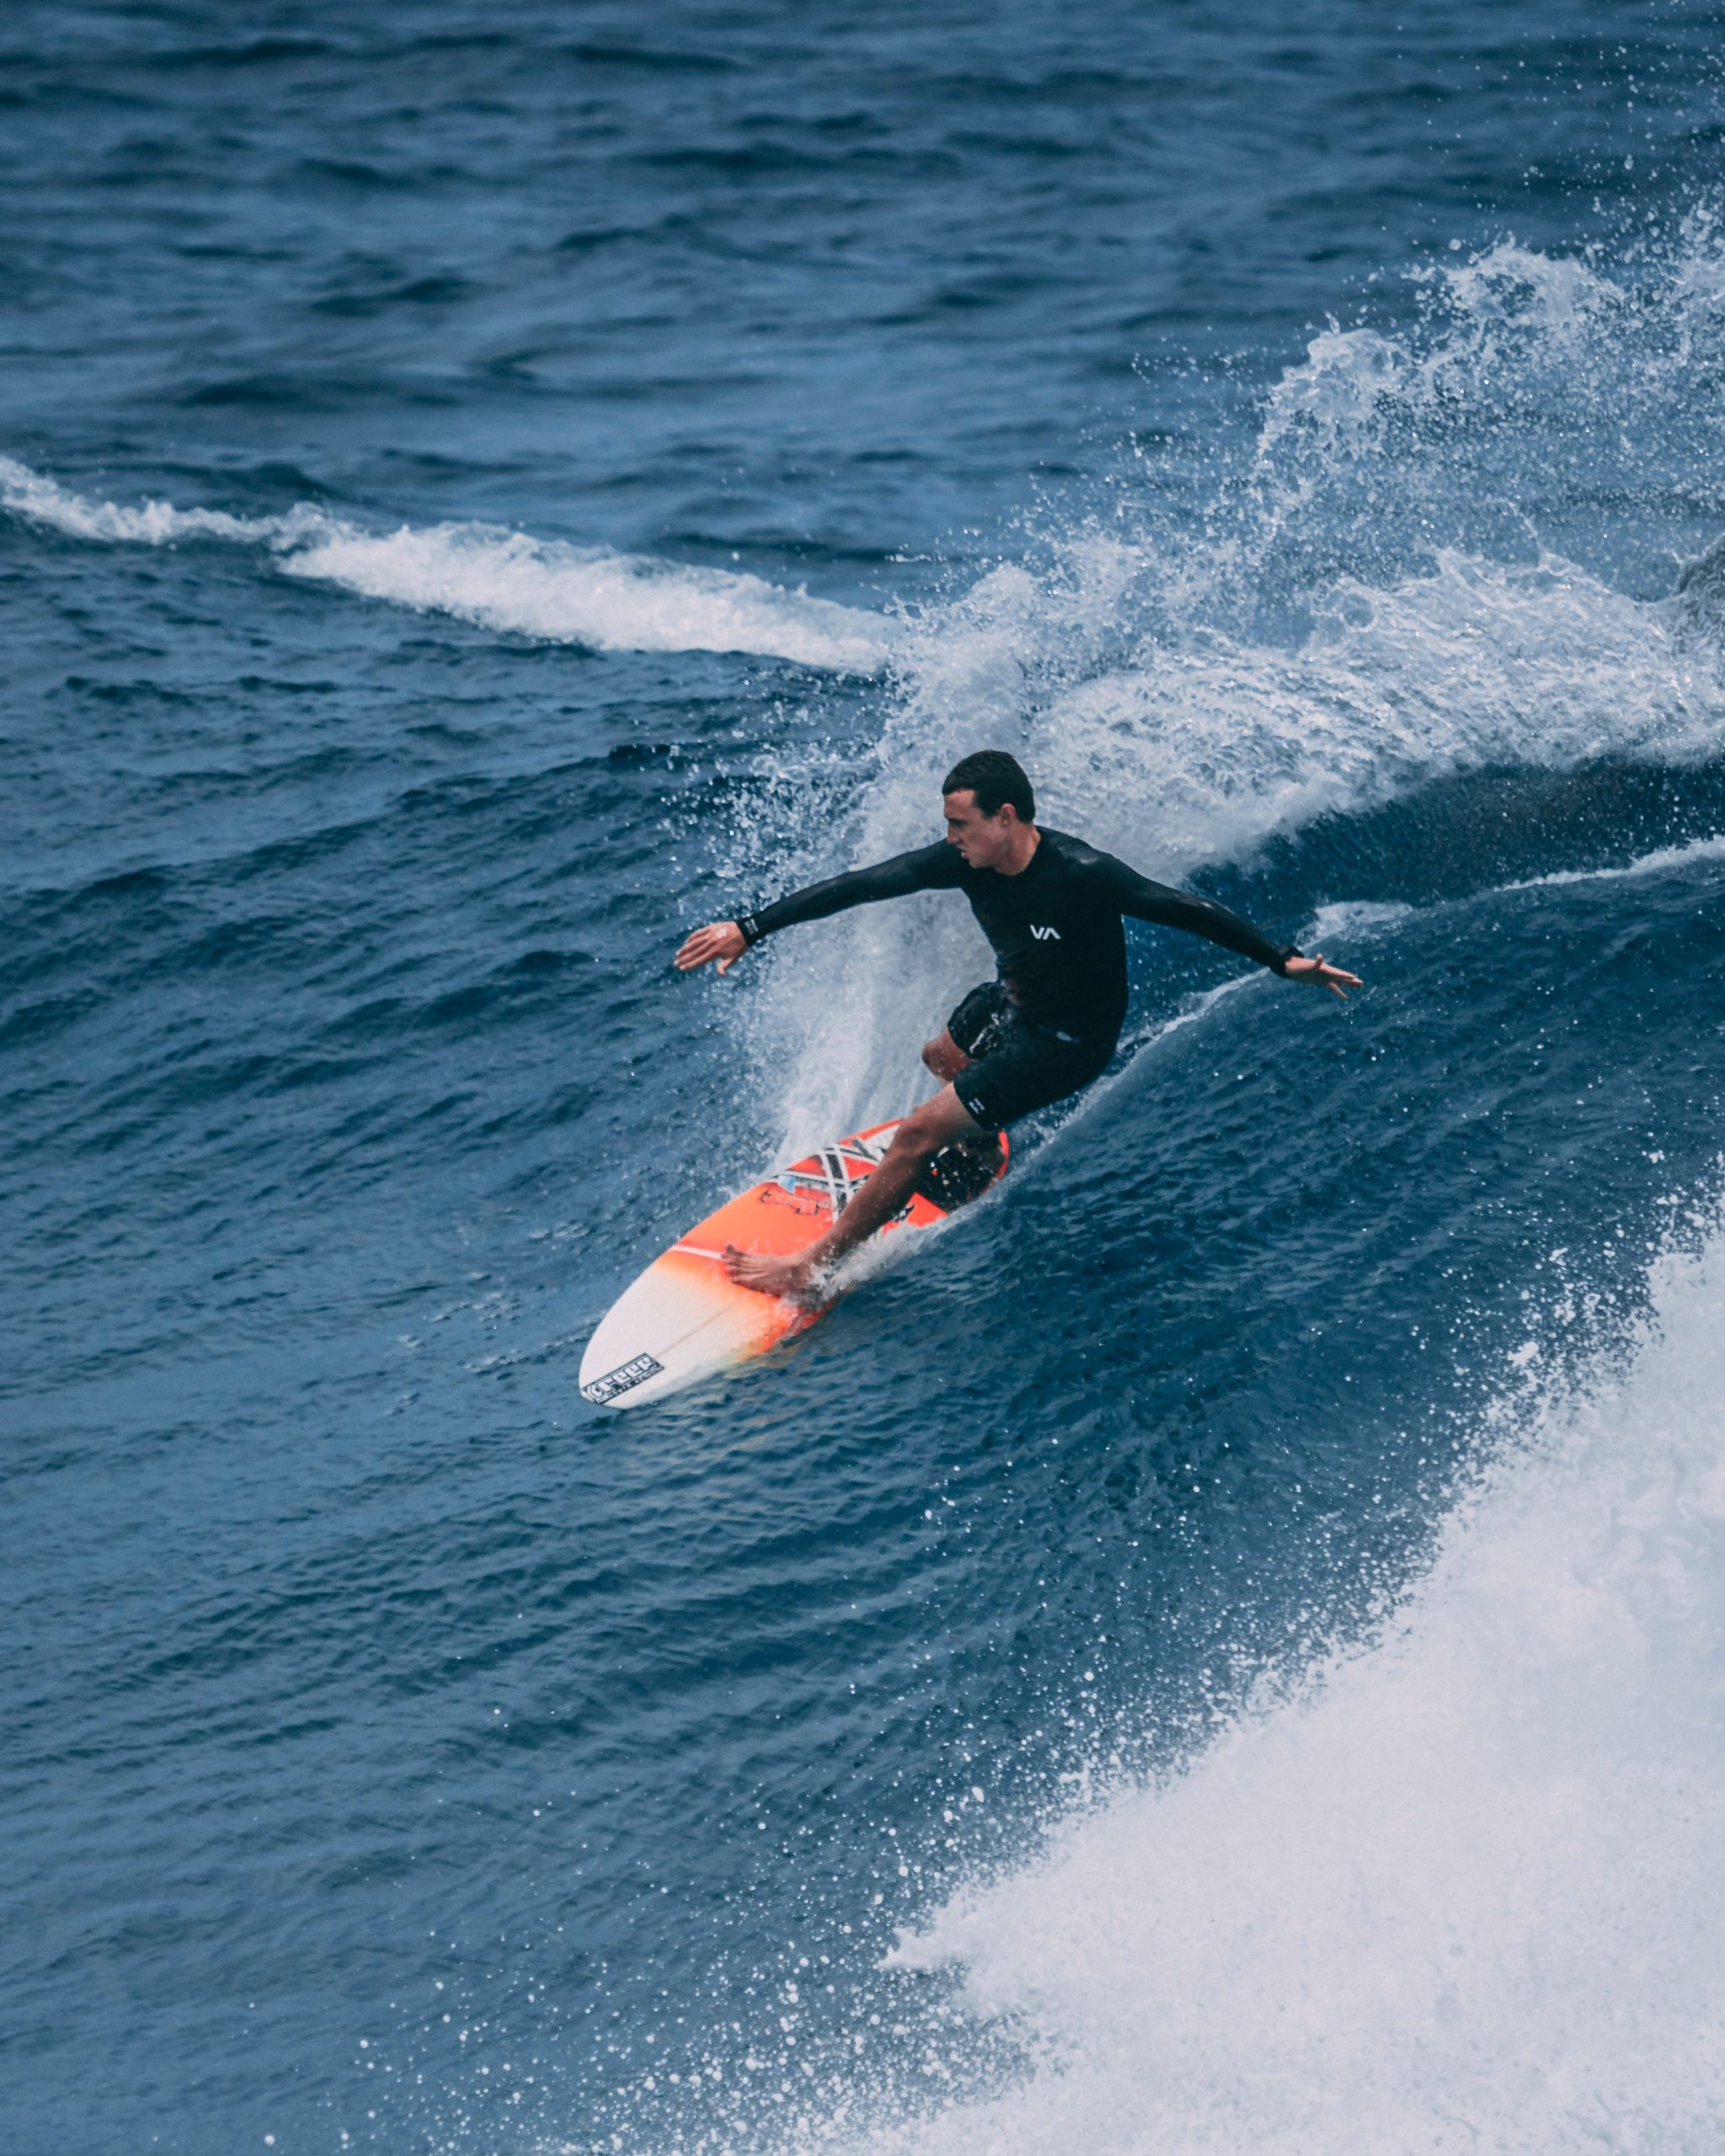 The Details Of Some Safe While Surfing Tips